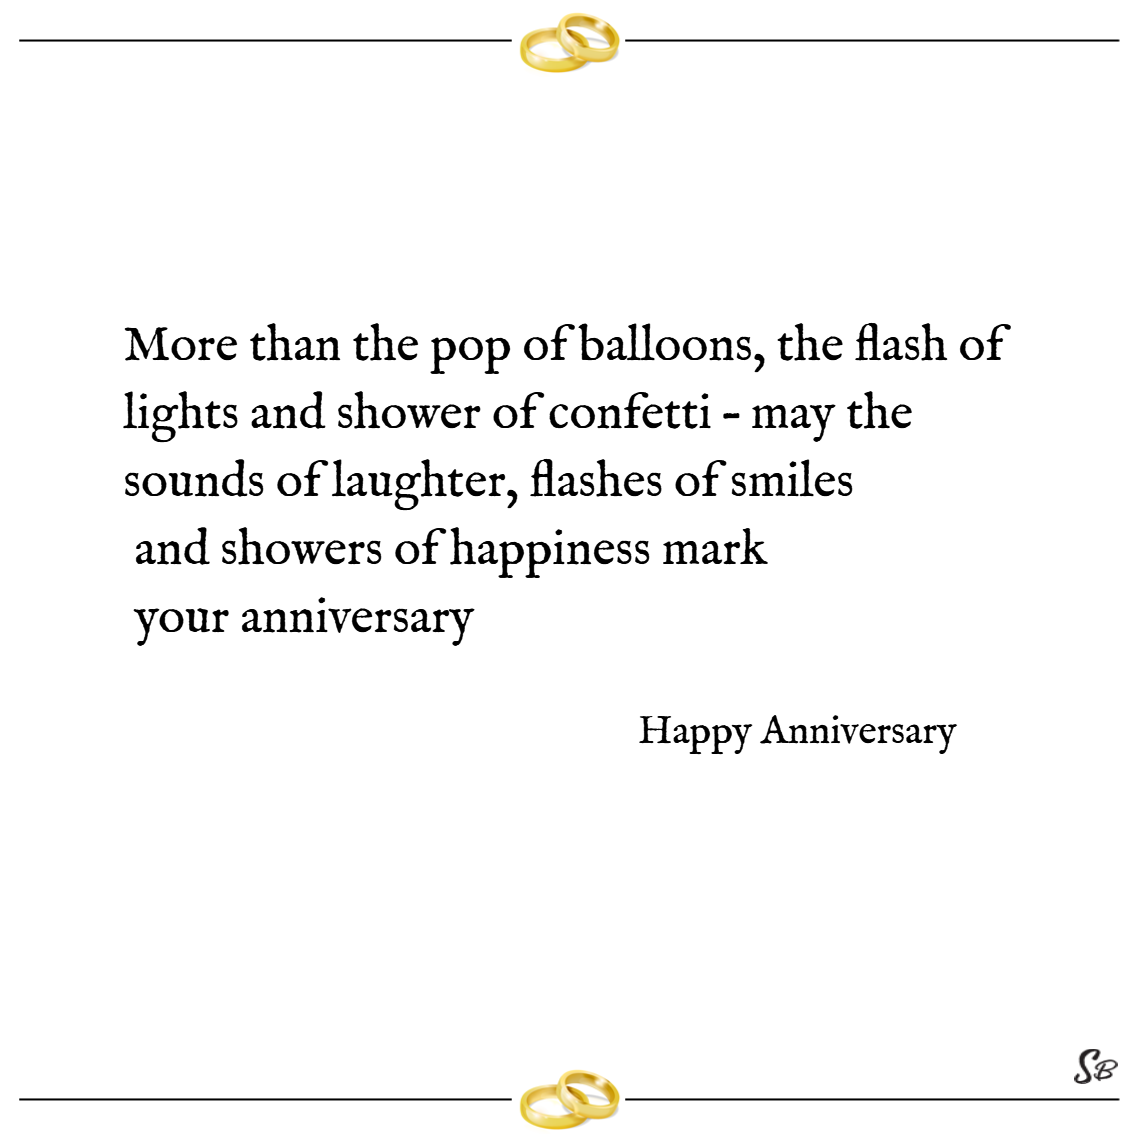 More than the pop of balloons, the flash of lights and shower of confetti – may the sounds of laughter, flashes of smiles and showers of happiness mark your anniversary